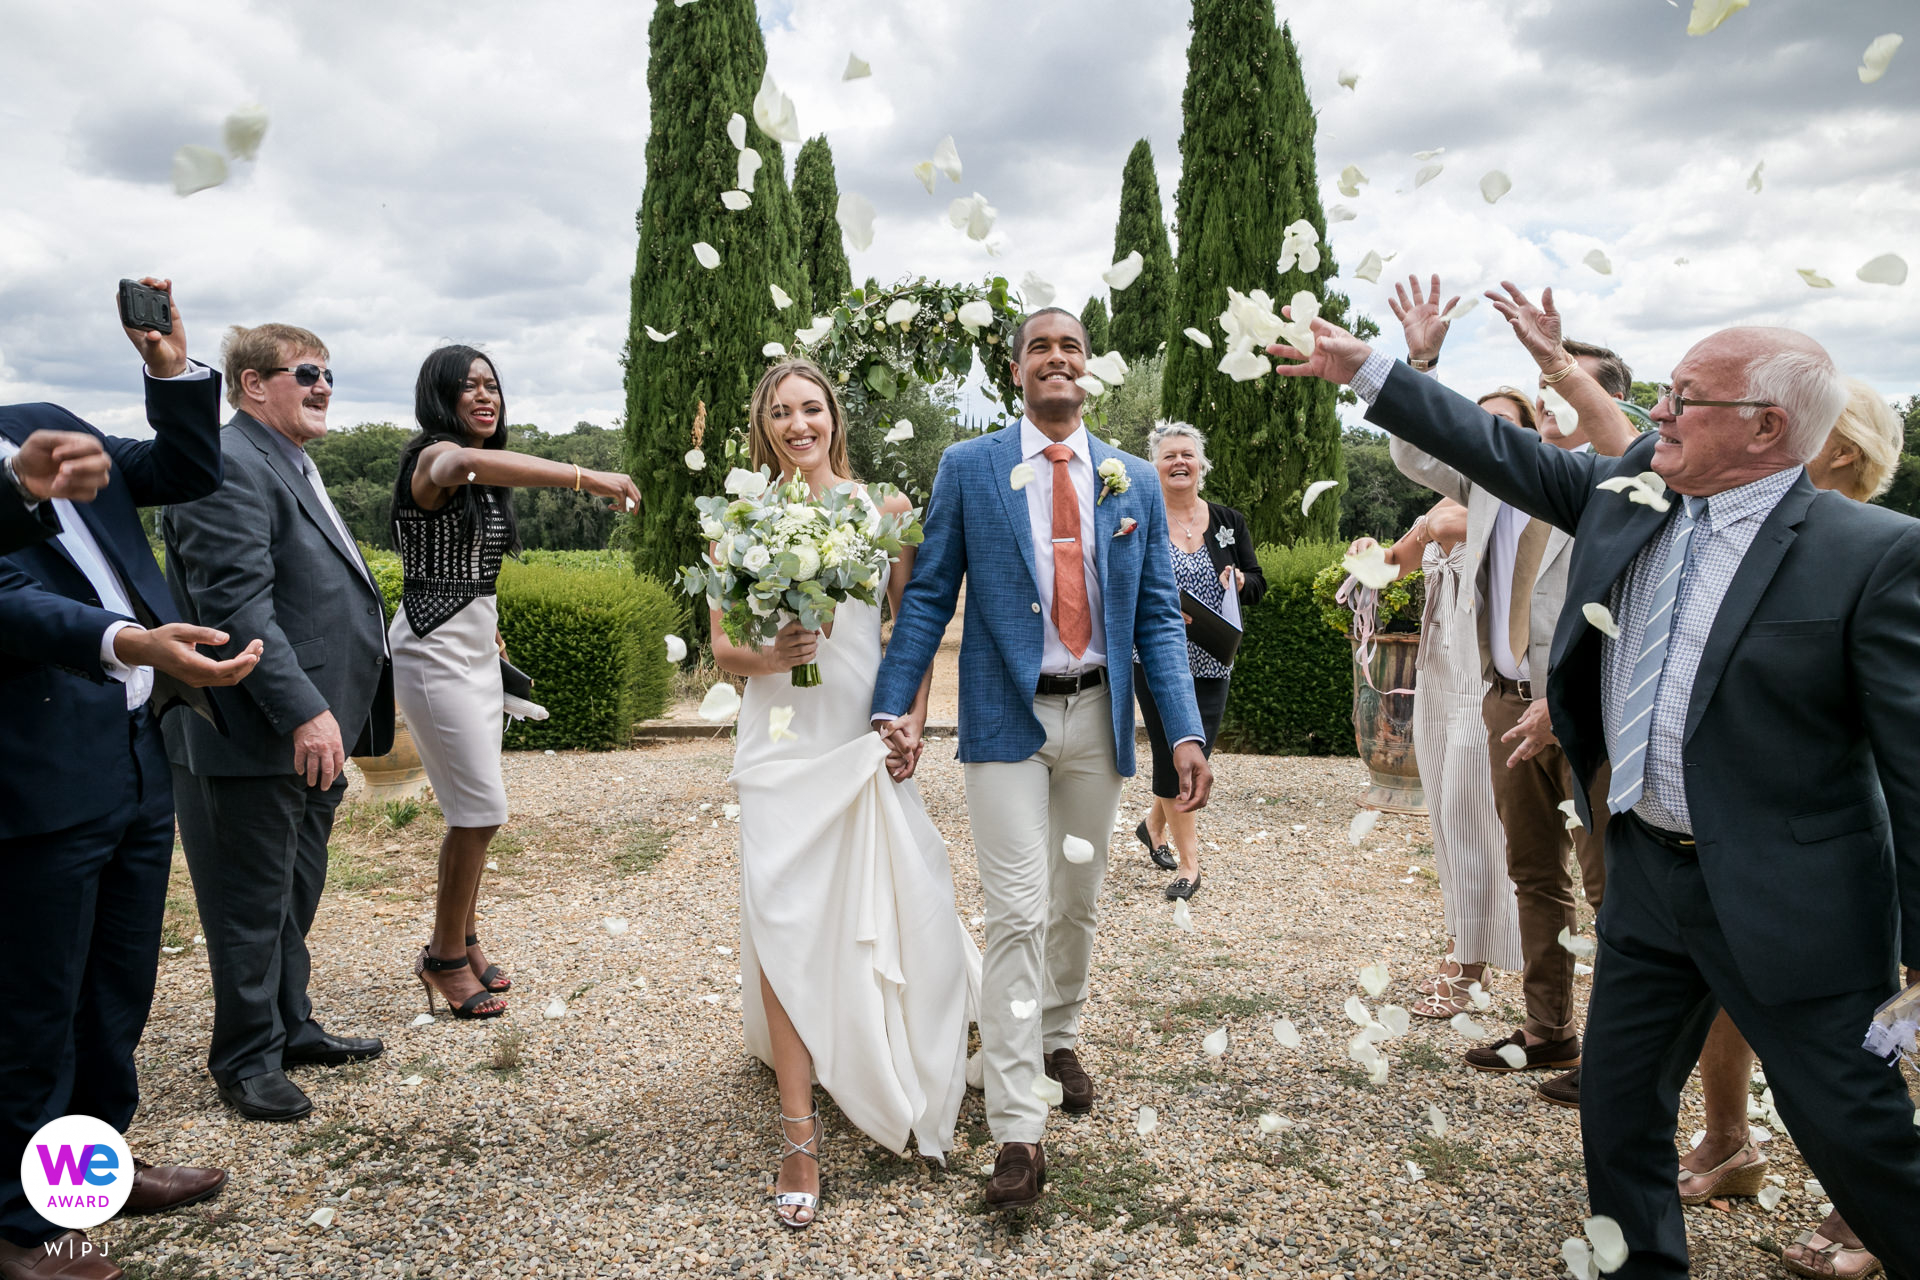 Seigneurie de Peyrat, France Elopement Photographer | The guests toss rose petals at the bride and groom